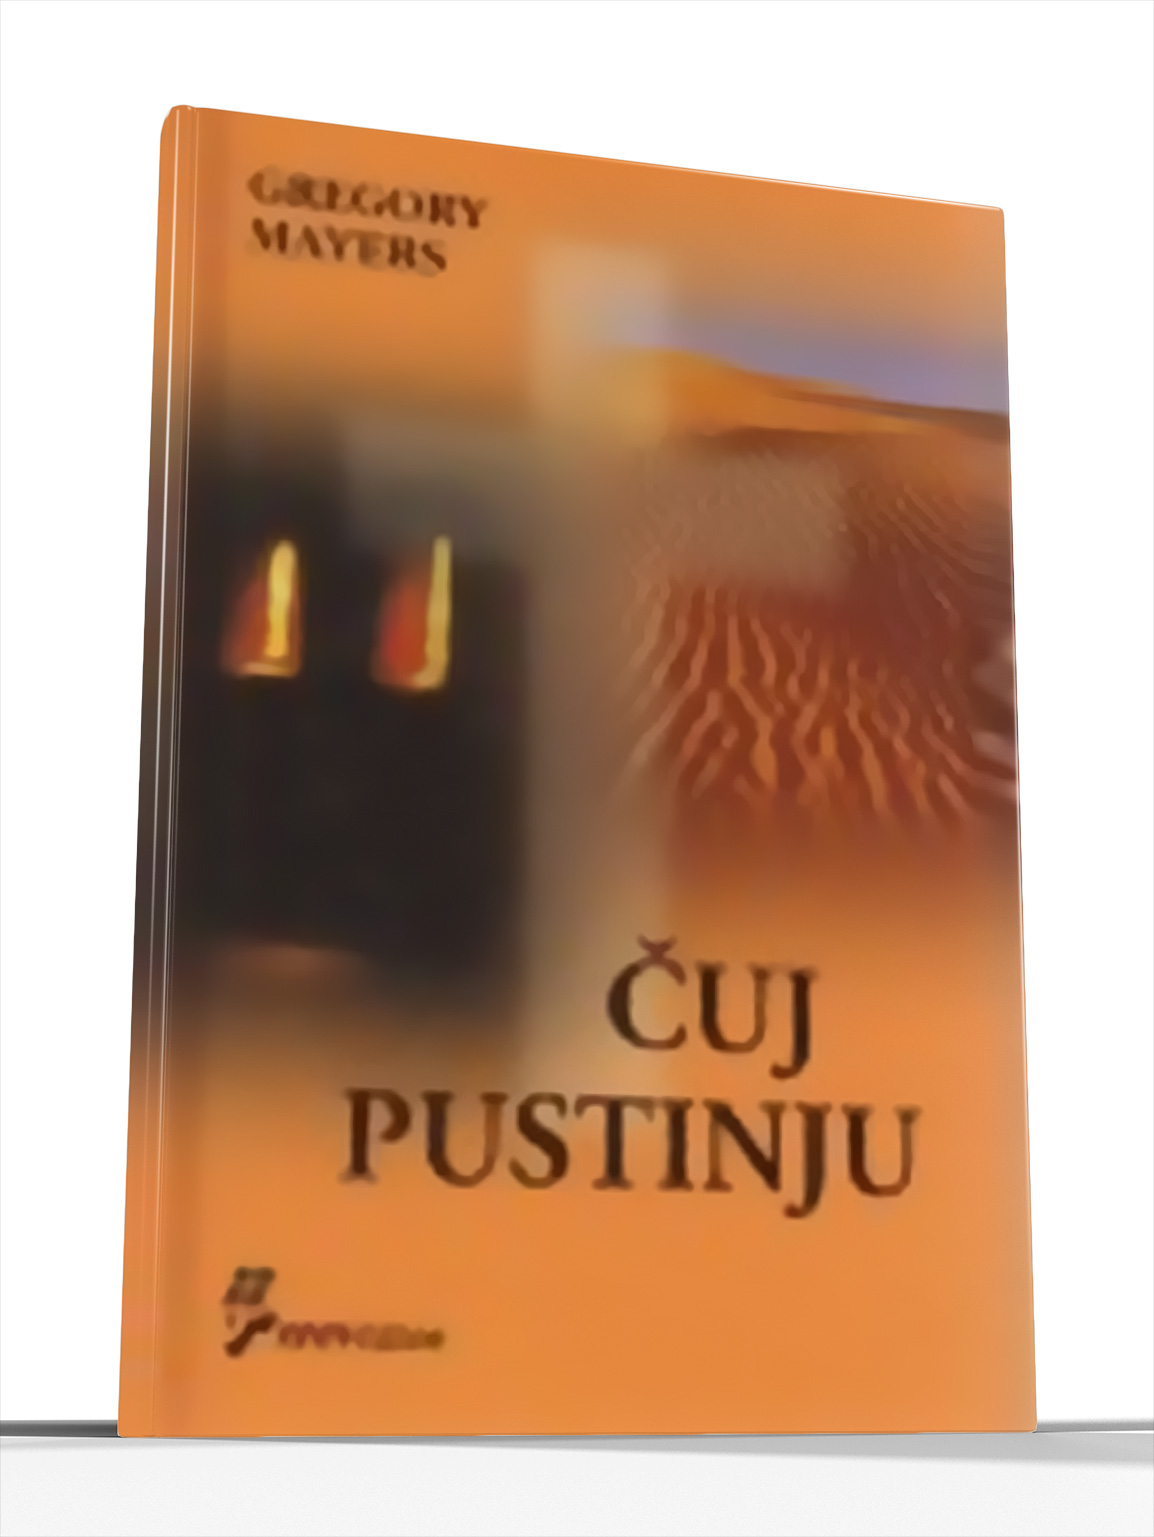 ČUJ PUSTINJU - Gregory Mayers